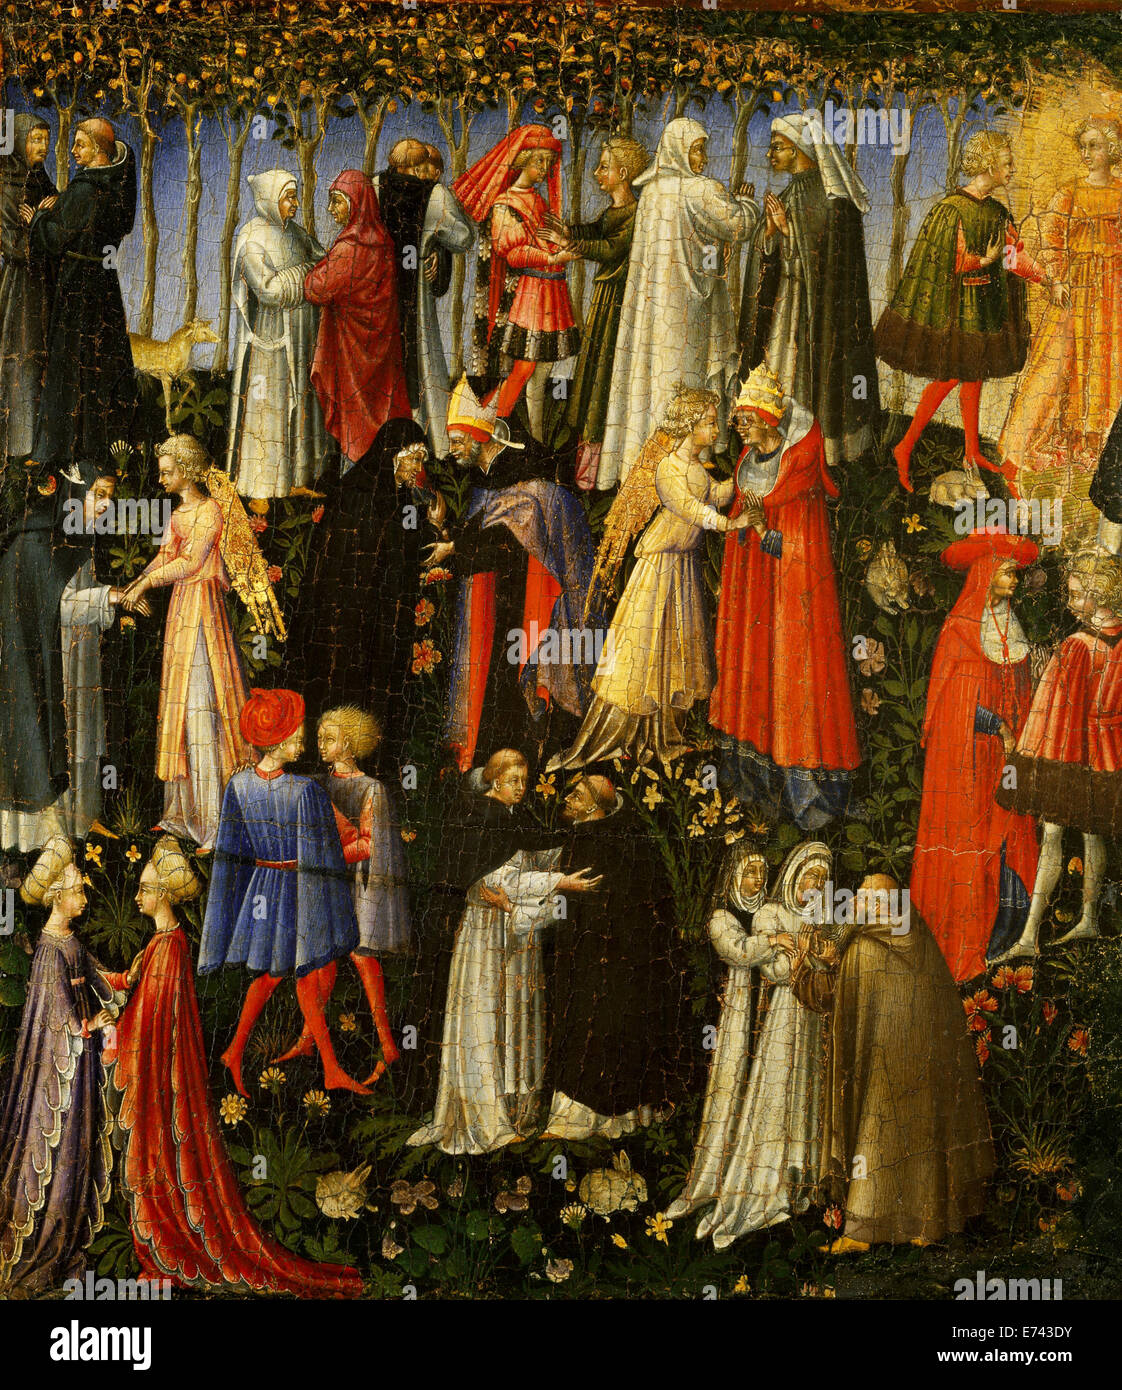 Paradise - by Giovanni di Paolo, 1445 - Stock Image